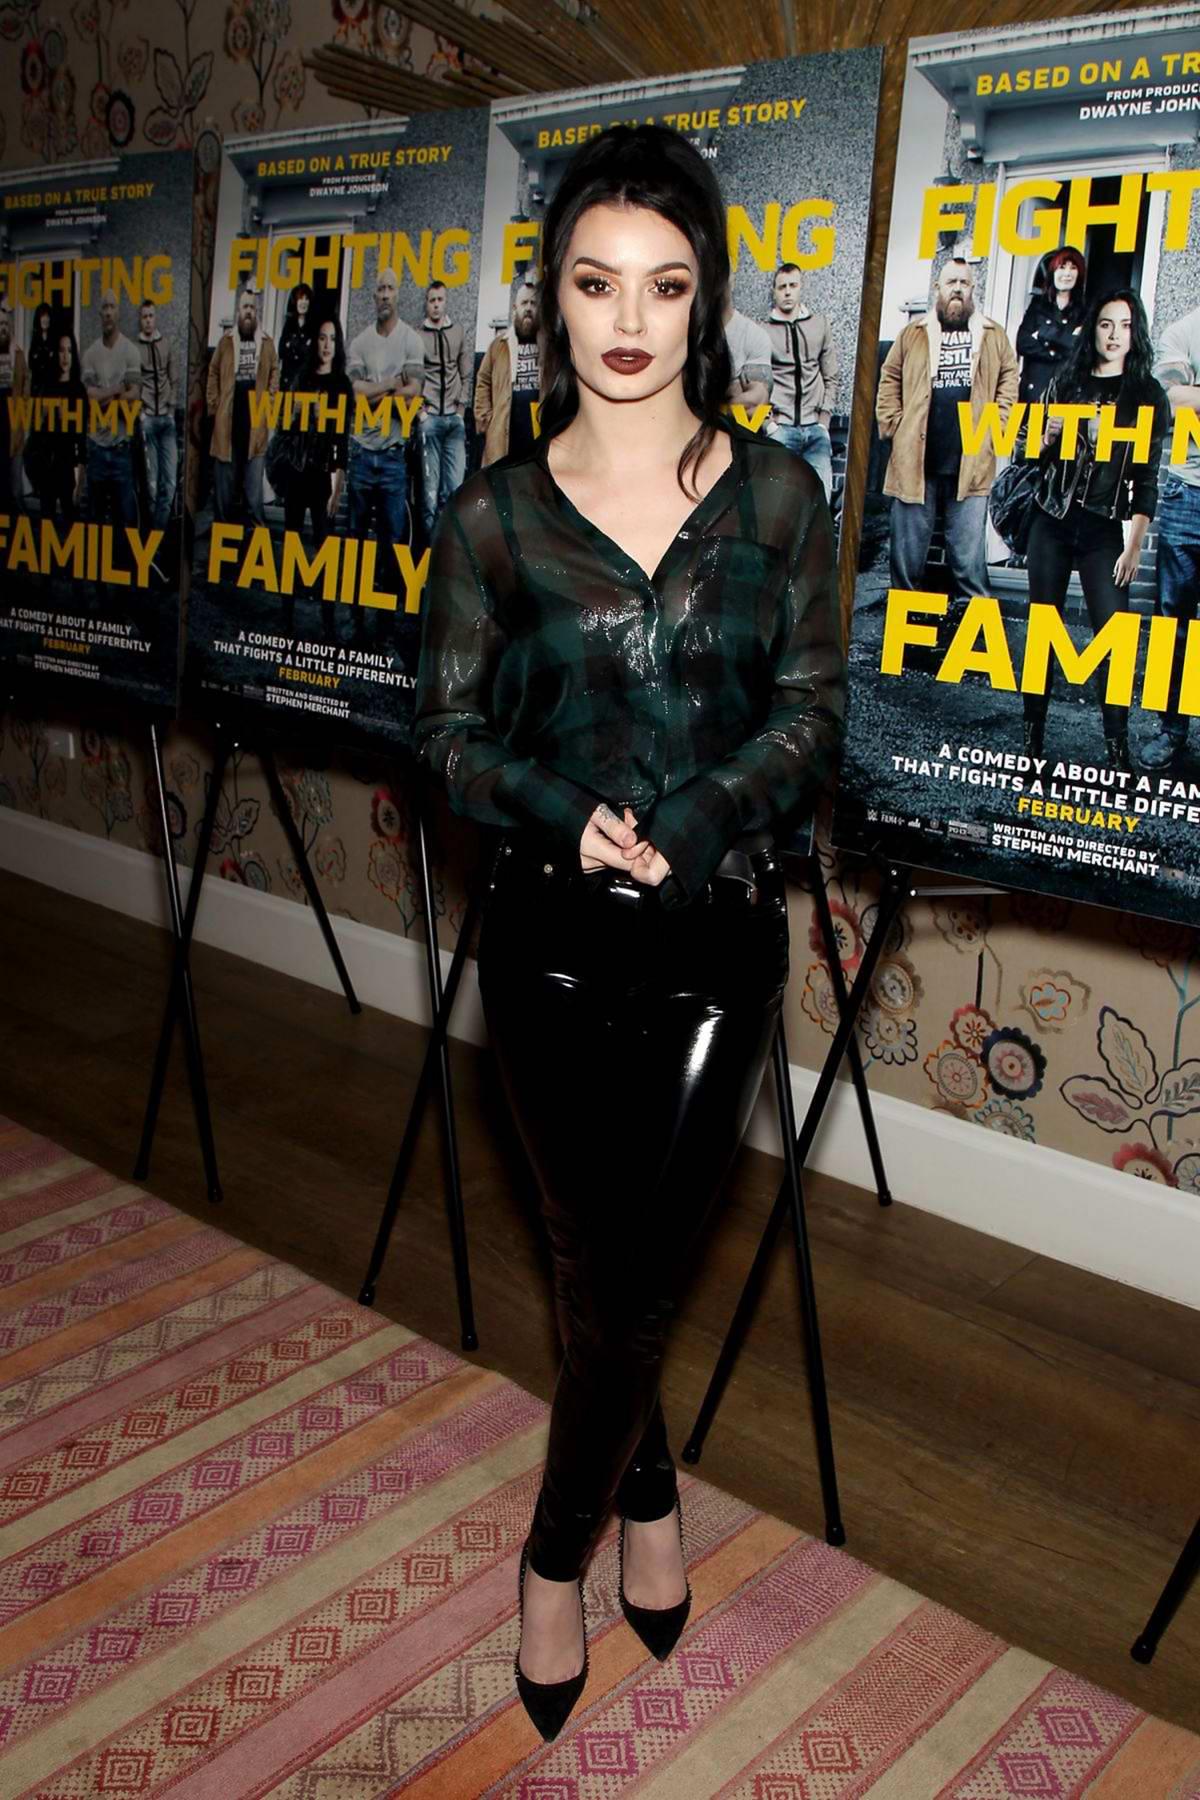 Saraya-Jade 'Paige' Bevis attends Fighting with My Family special screening in New York City